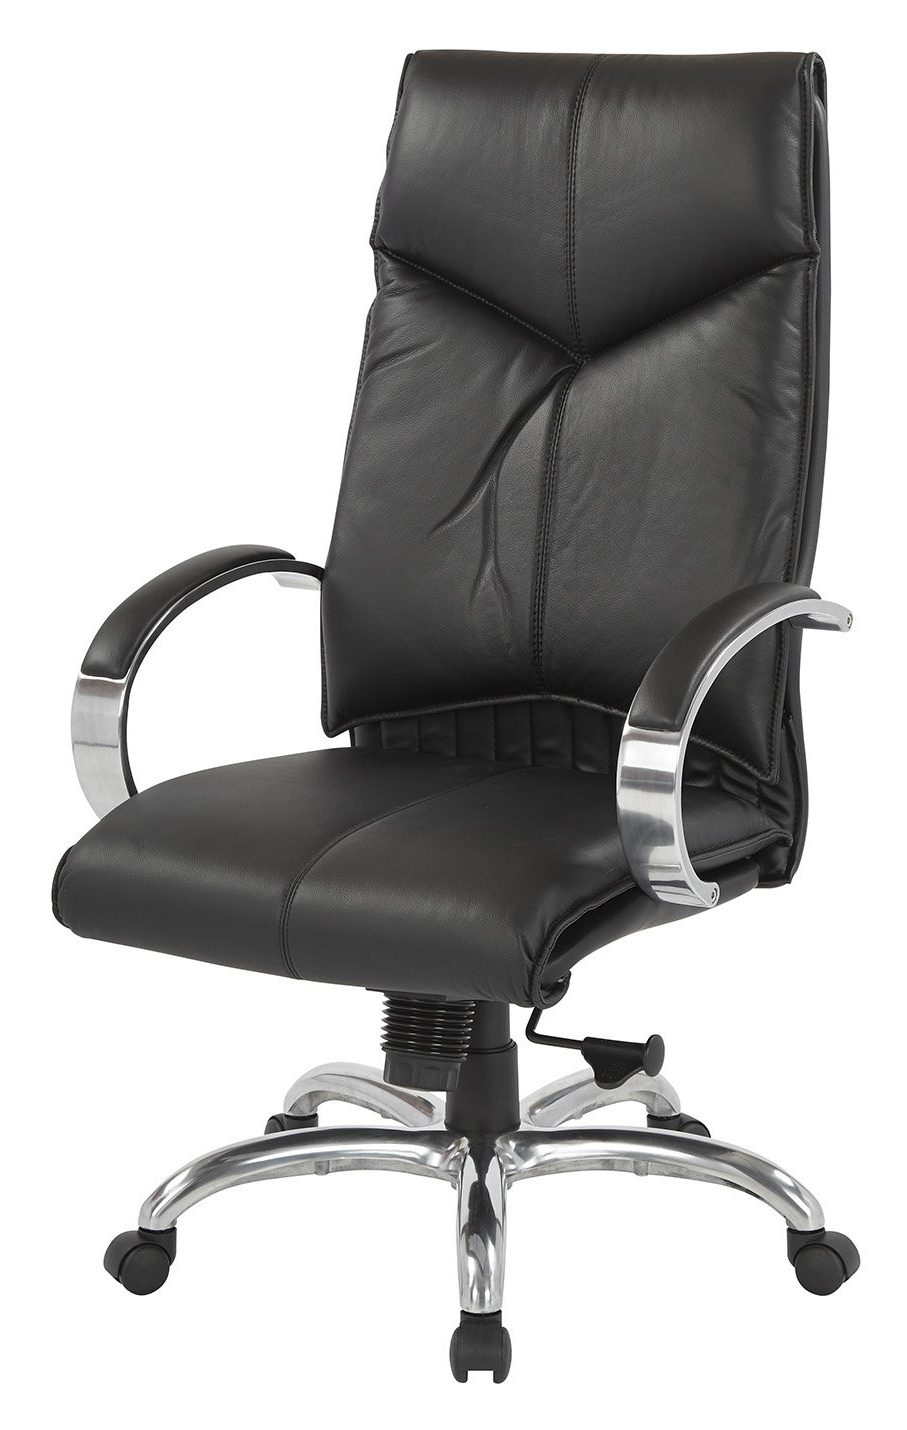 Top Grain Black Leather High Back Swivel Chair With Chrome Base Intended For Favorite Leather Black Swivel Chairs (View 10 of 20)